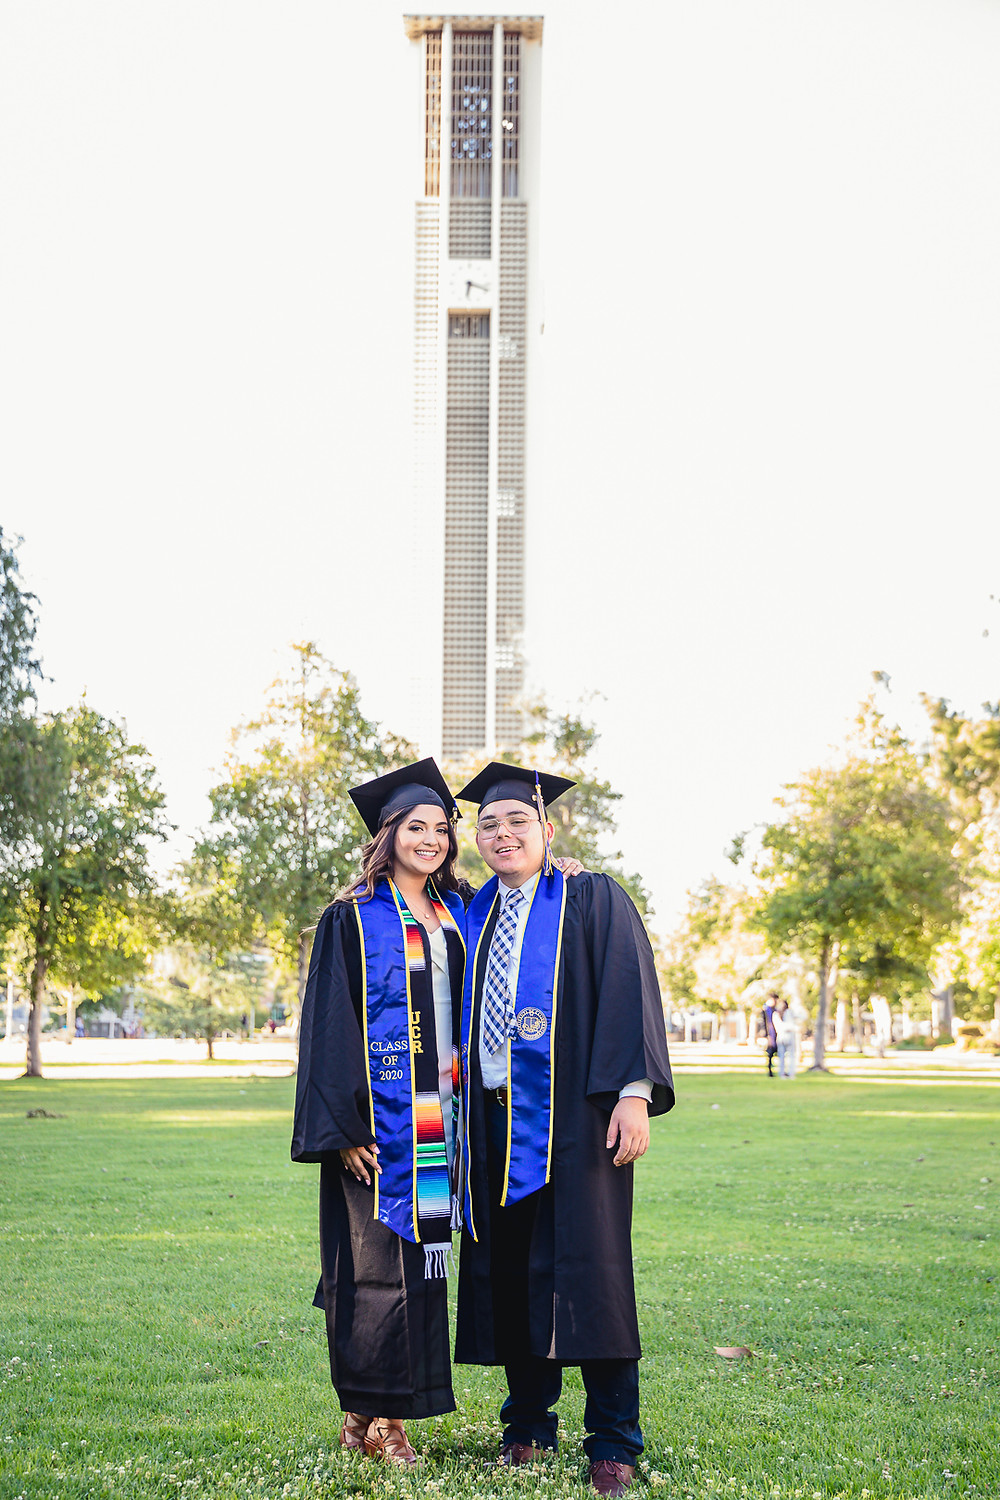 University of California Riverside Graduation Photos | Kassandra and Angel 7